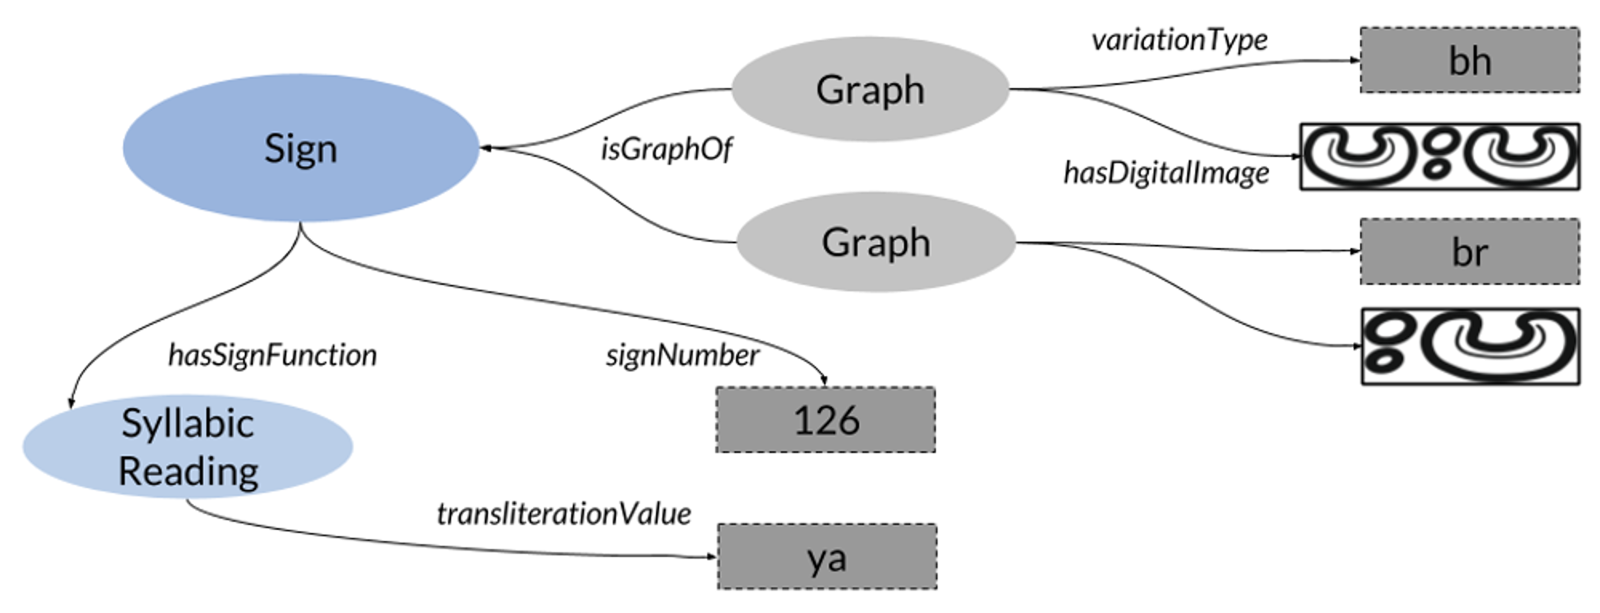 Sign 126 with graph variants bh and br, and phonetic value /ya/